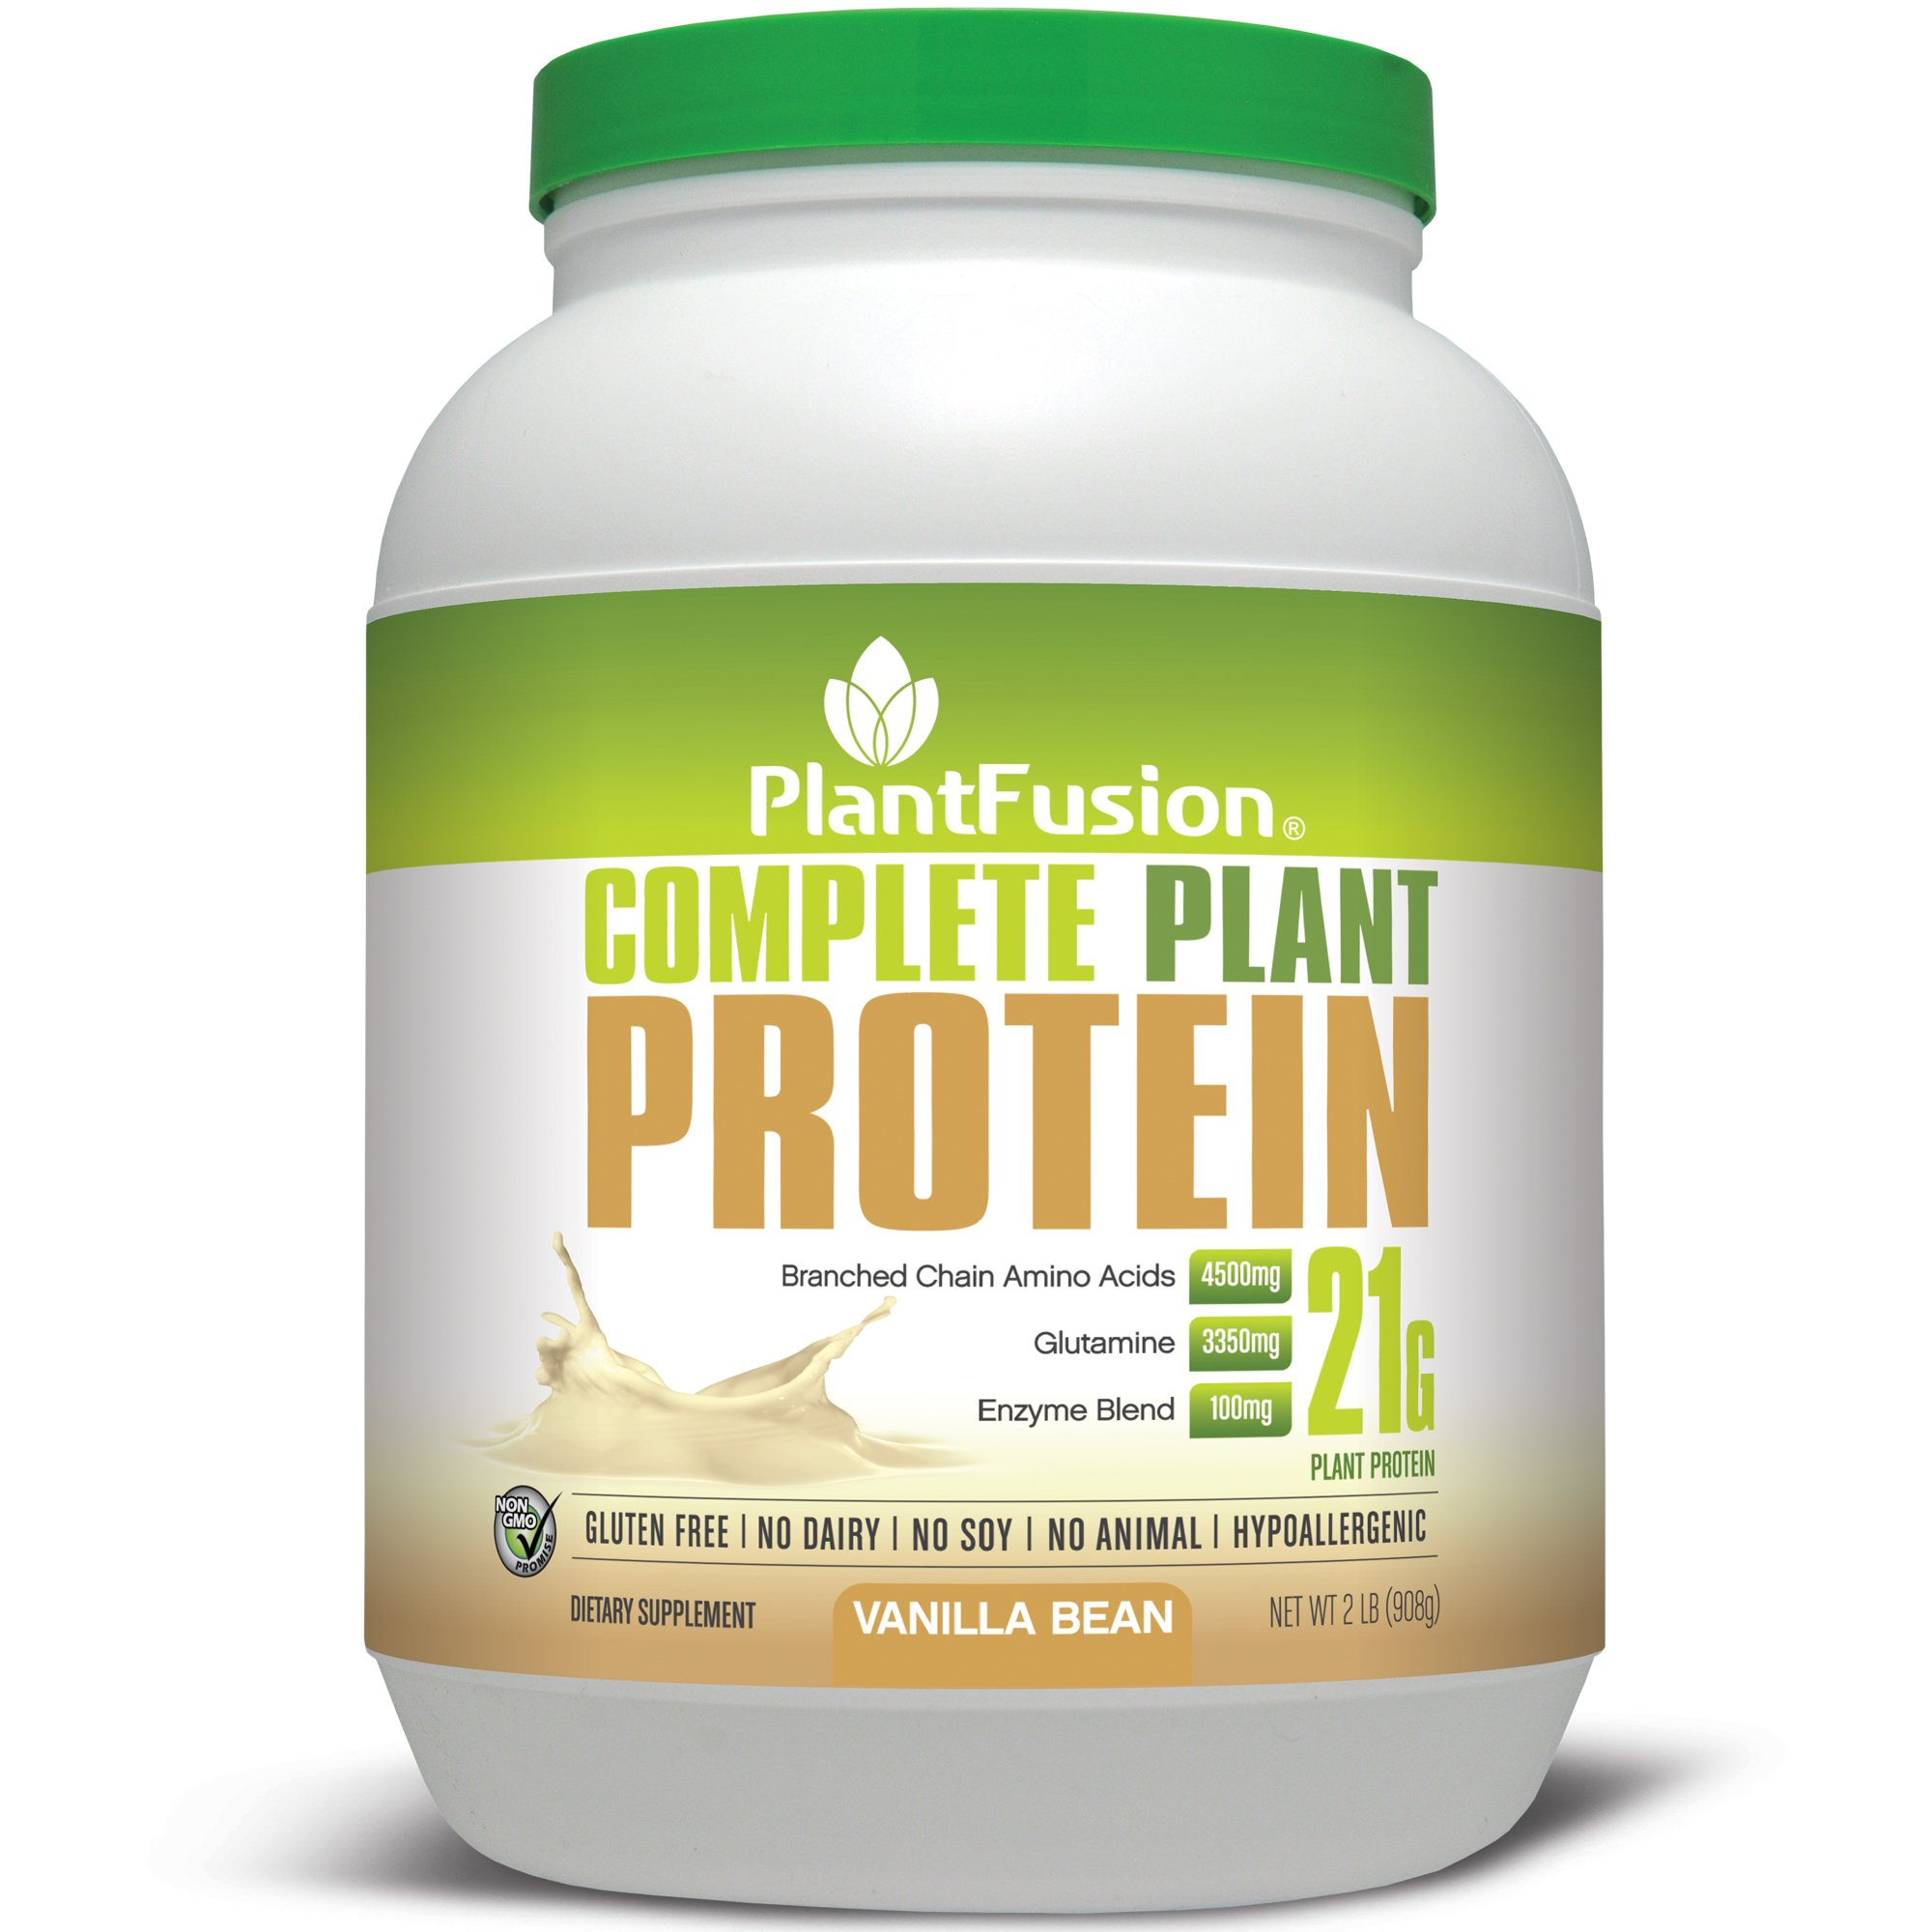 PlantFusion Complete Plant Based Protein Powder, Vanilla Bean, 2 Lb Tub, 30 Servings, 1 Count, Gluten Free, Vegan, Non-GMO, Packaging May Vary